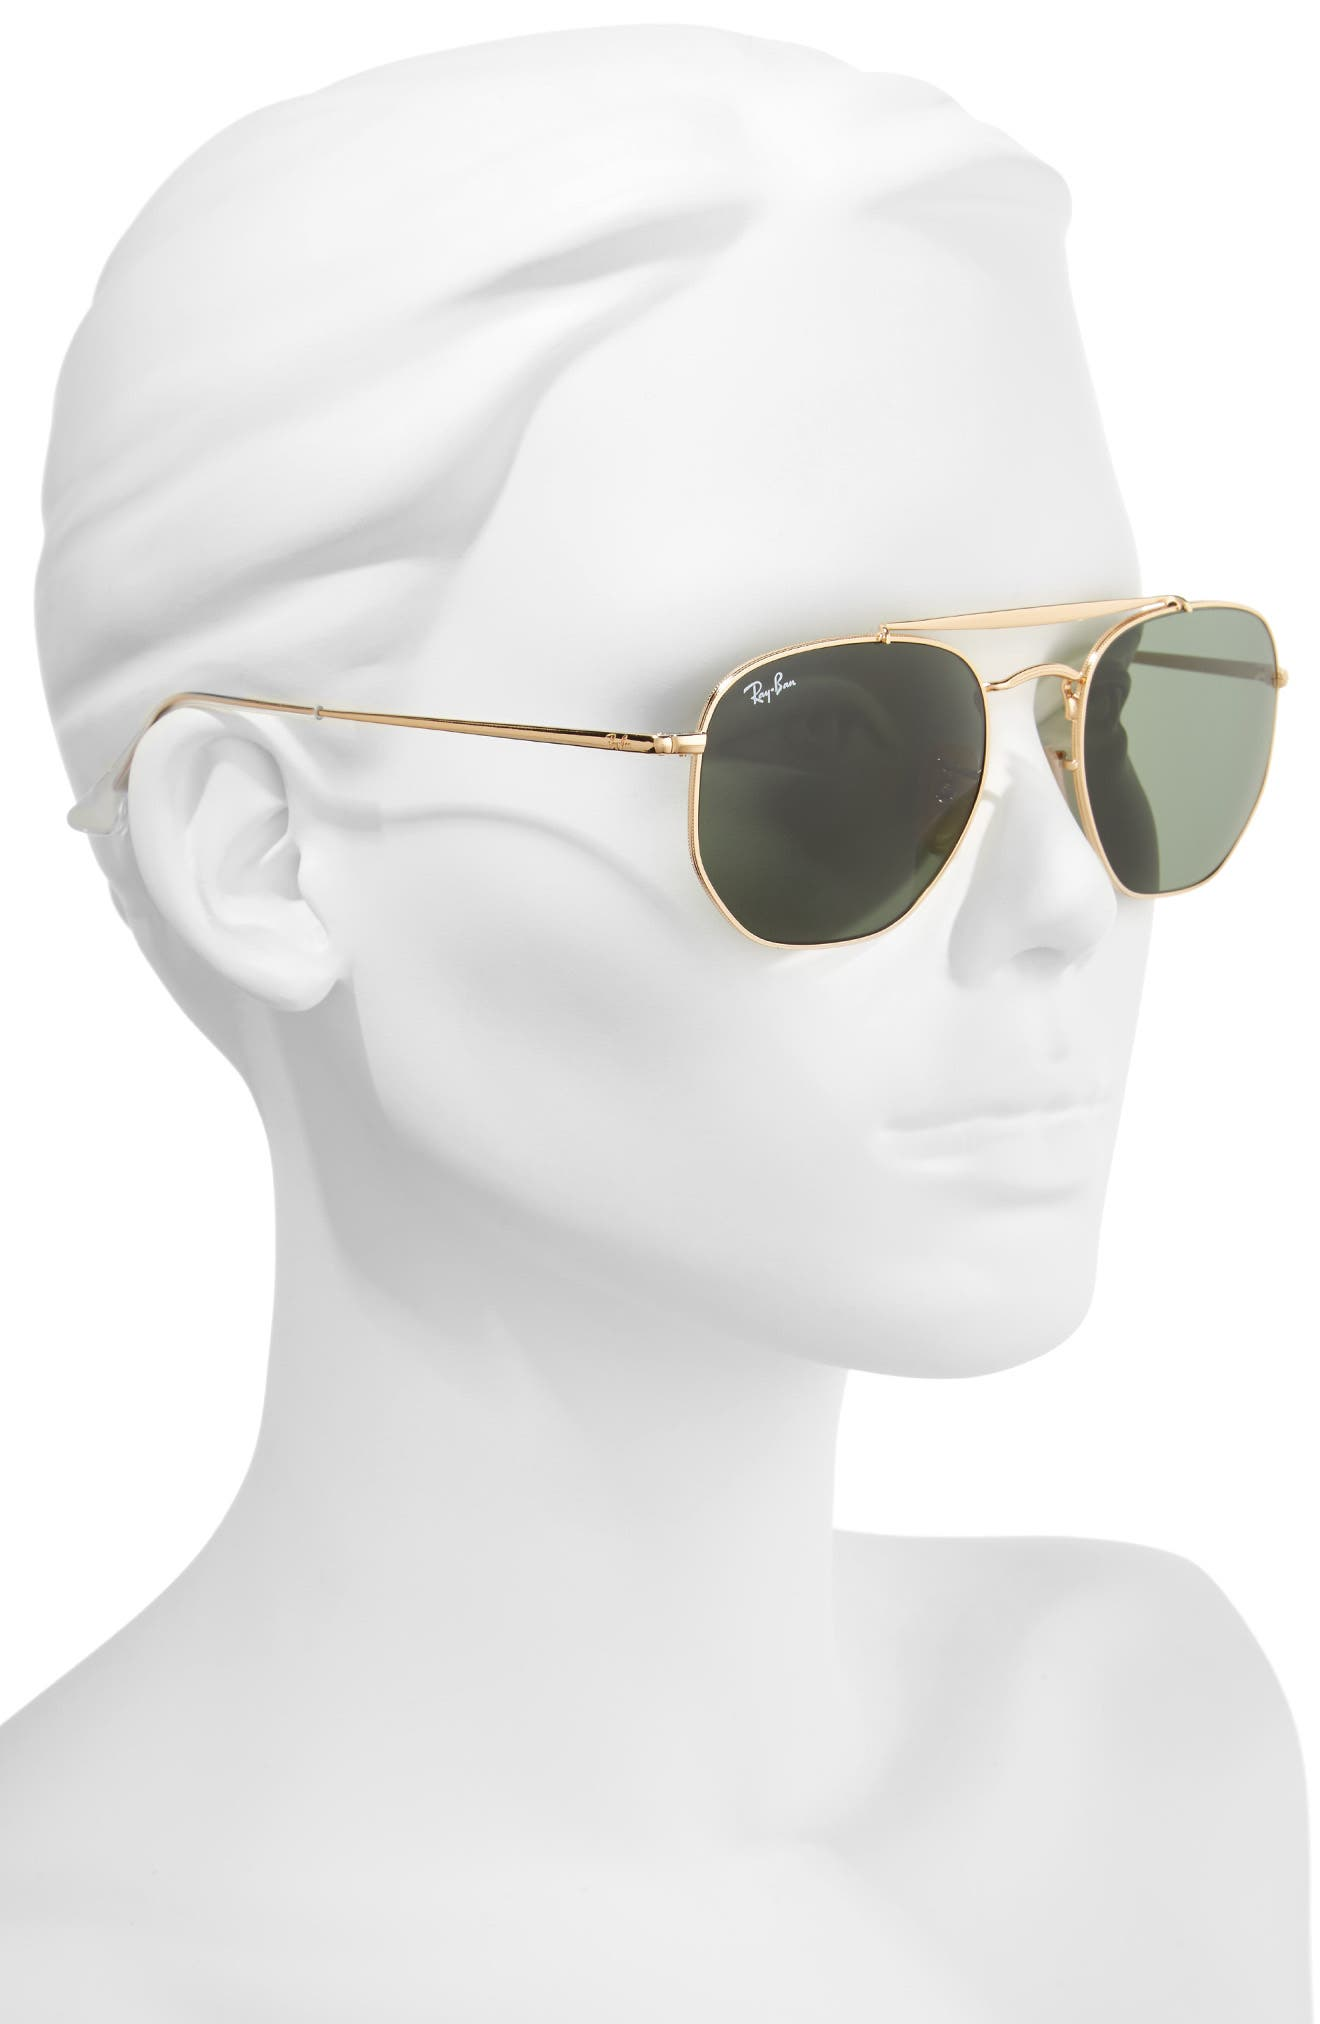 3592 54mm Sunglasses,                             Alternate thumbnail 2, color,                             Gold Green